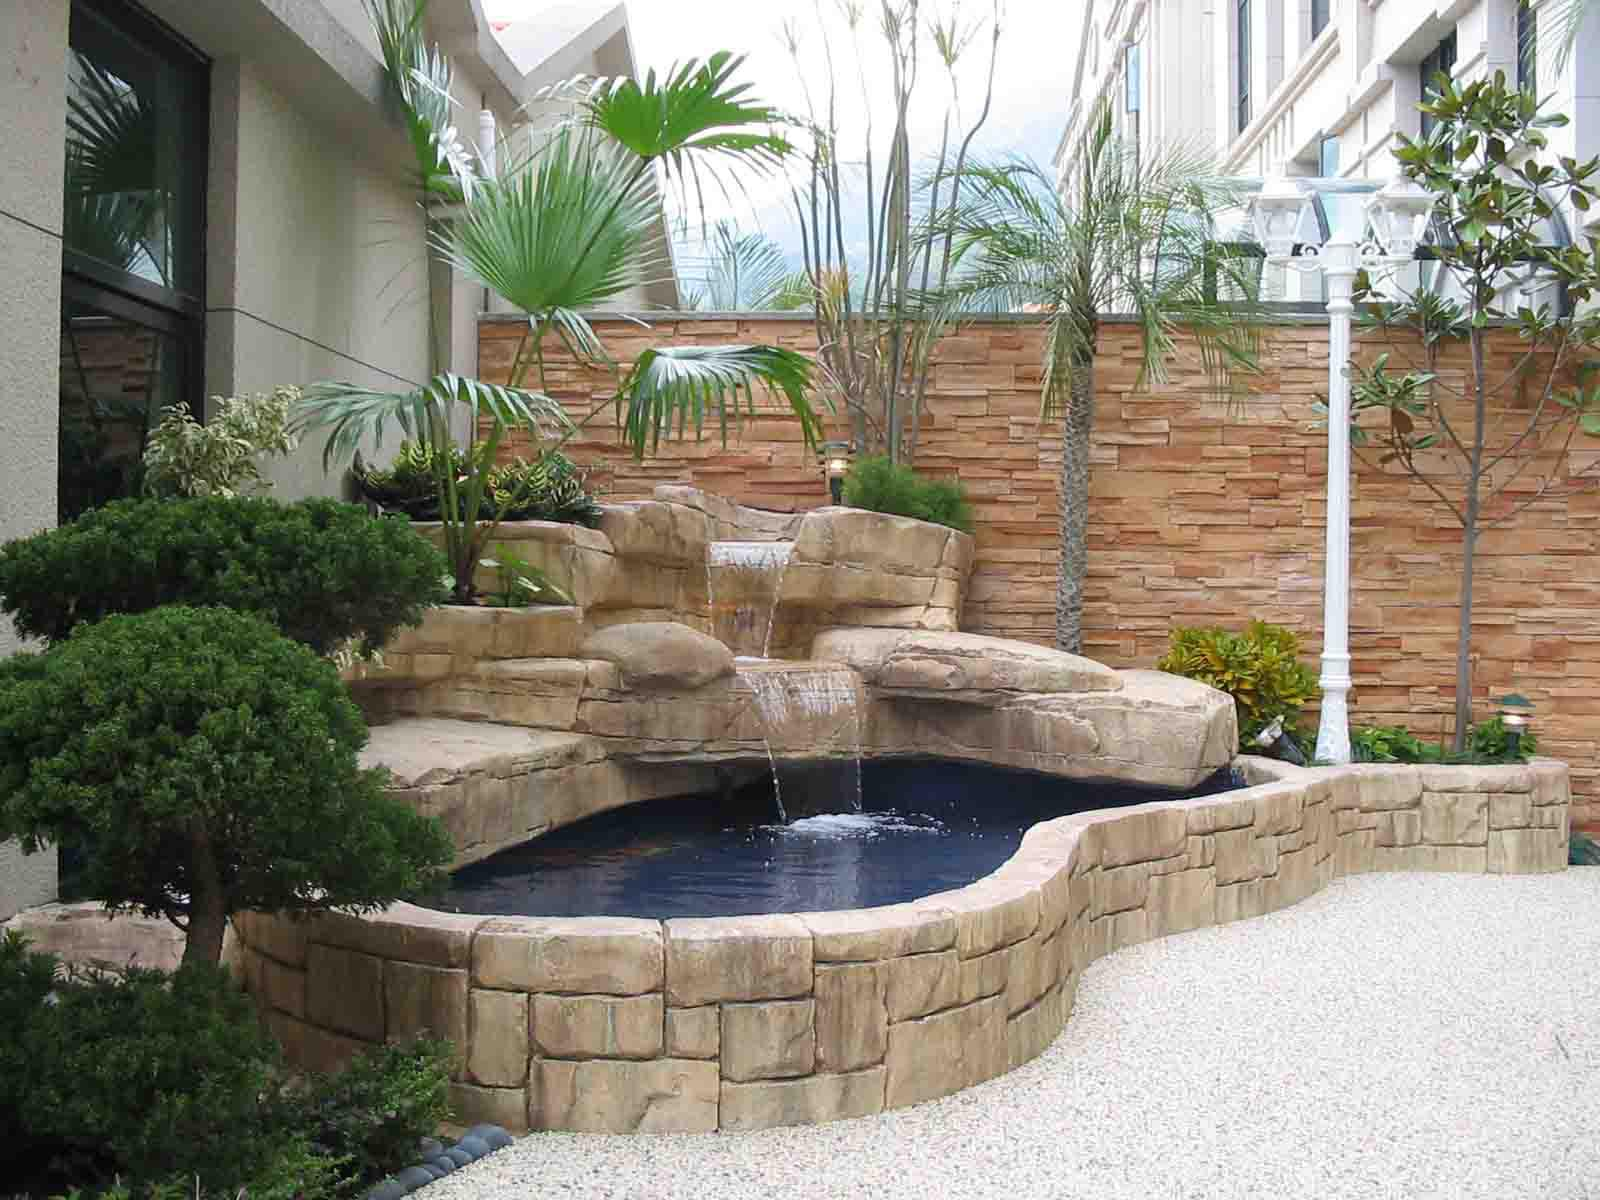 Fish pond garden design backyard design ideas for Garden fish pond ideas